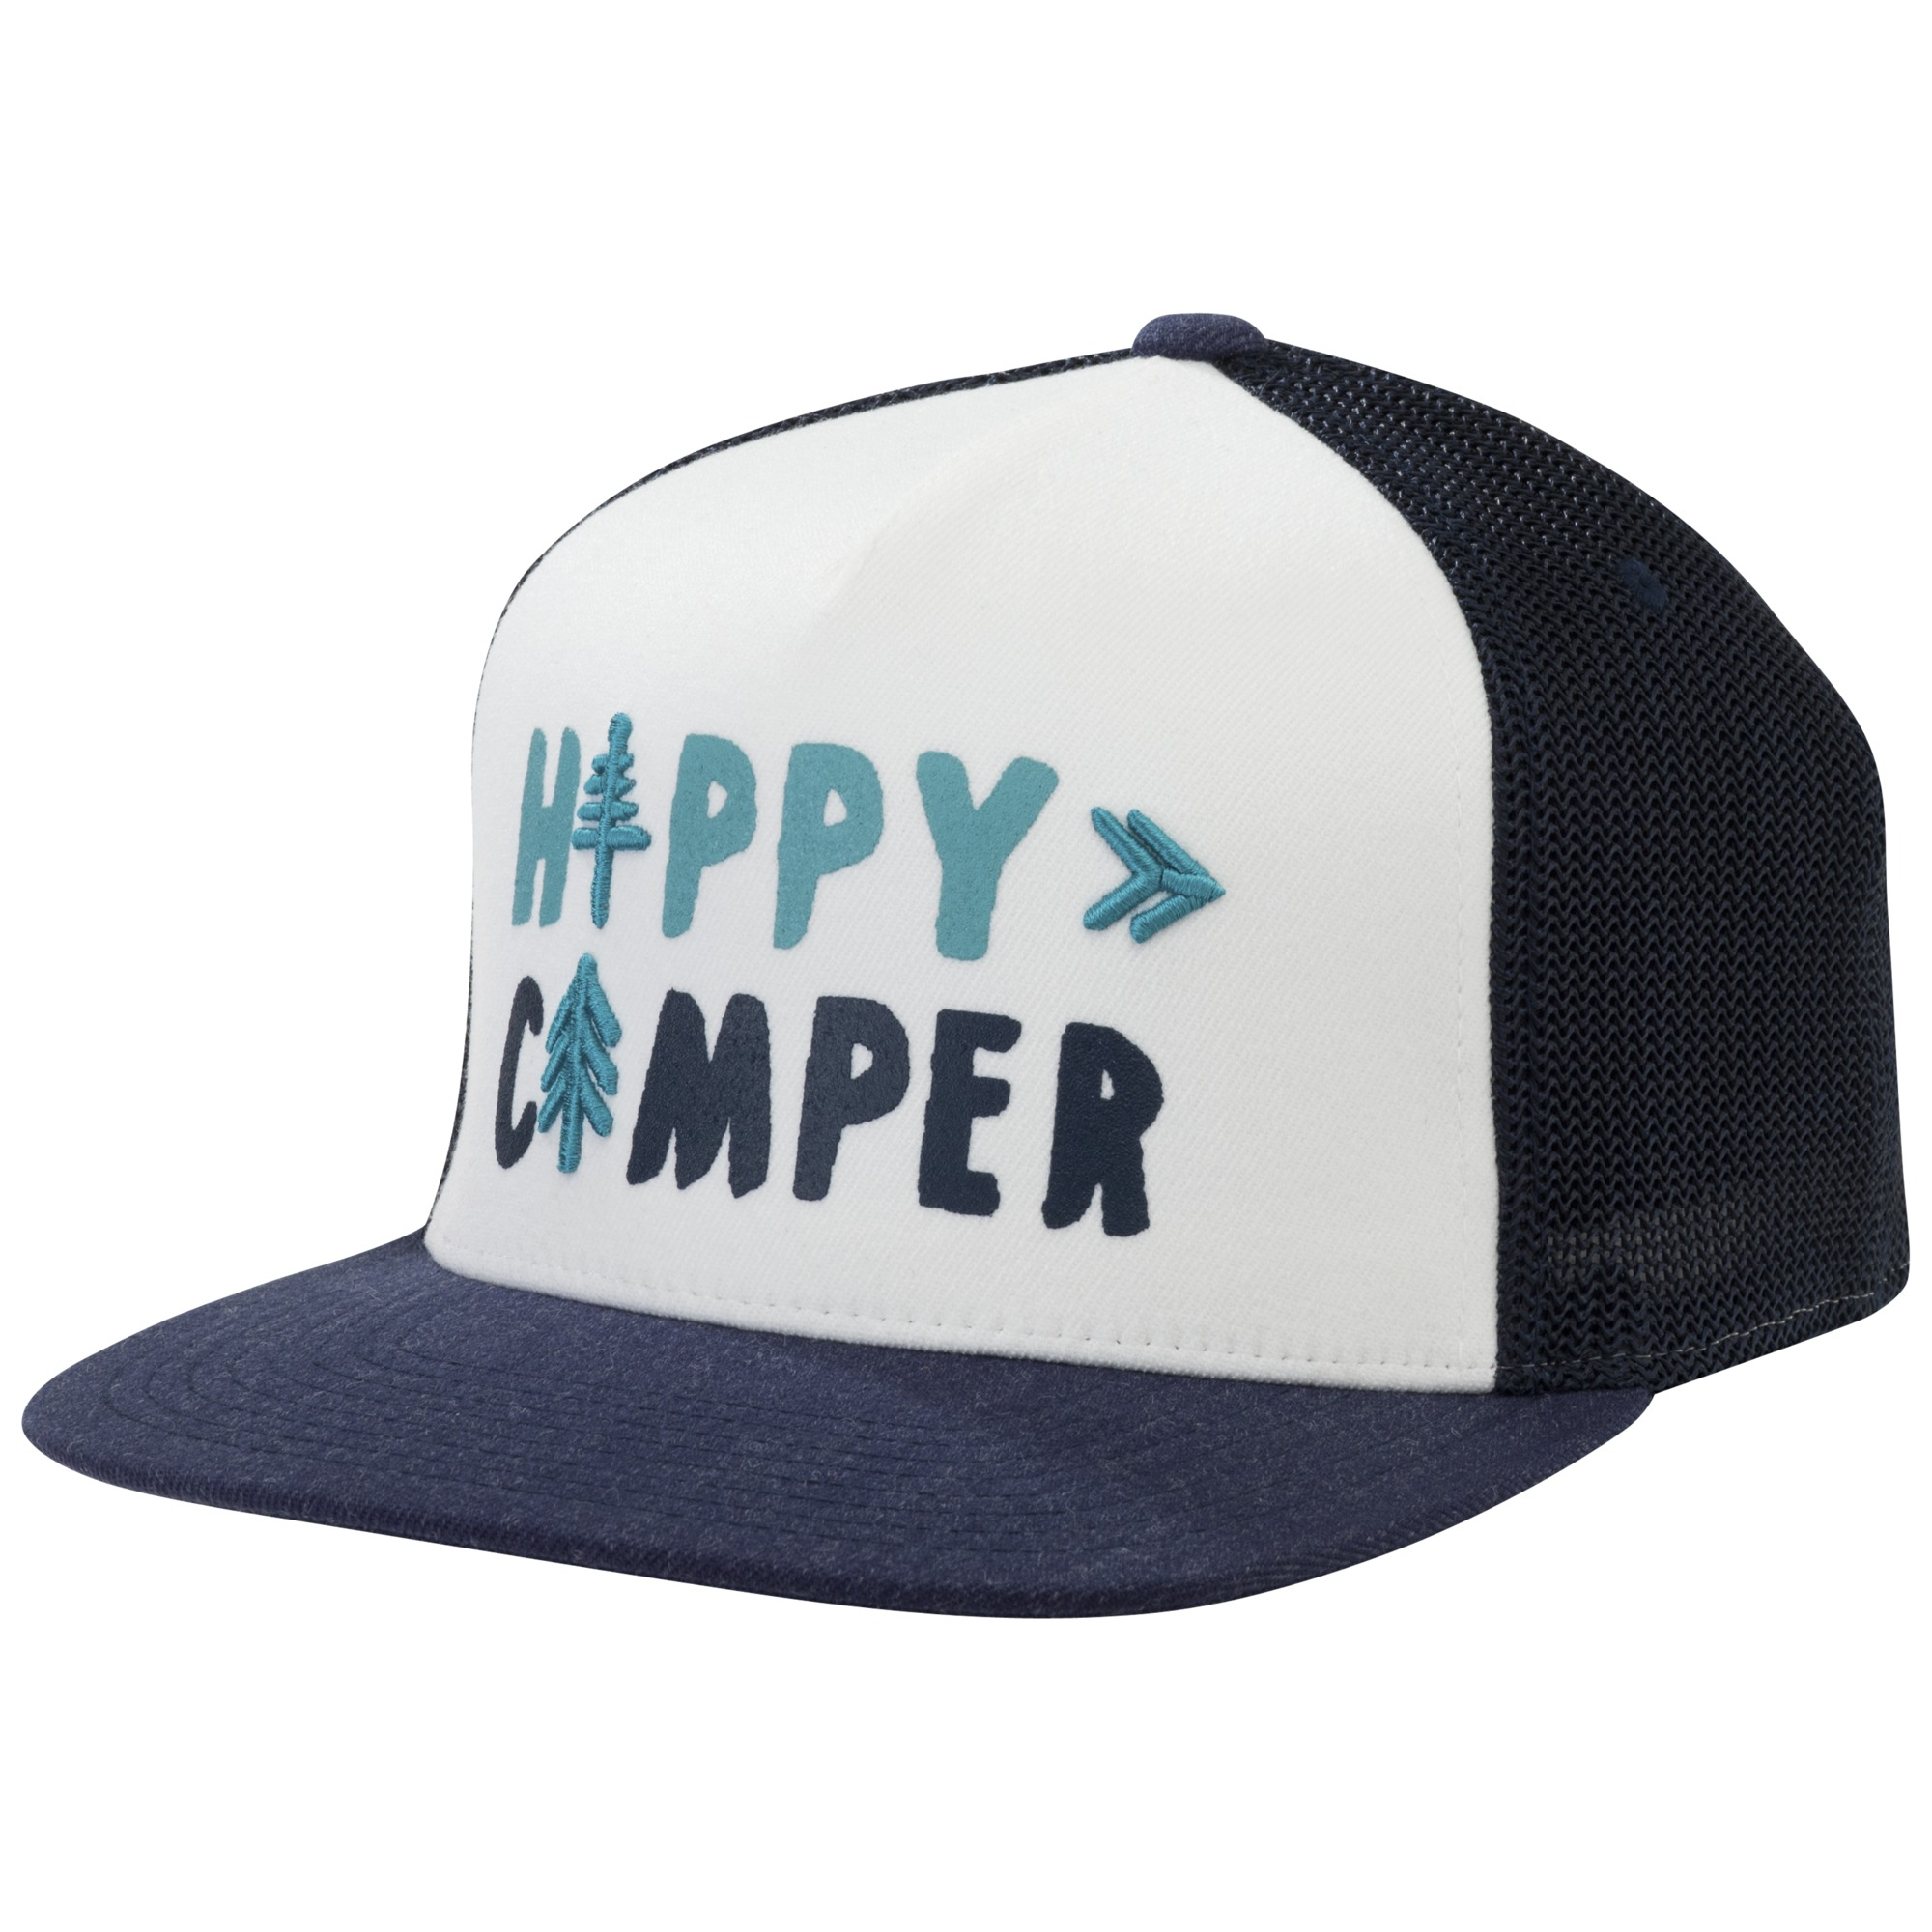 55bc01502b45c Happy Camper Trucker Cap - night